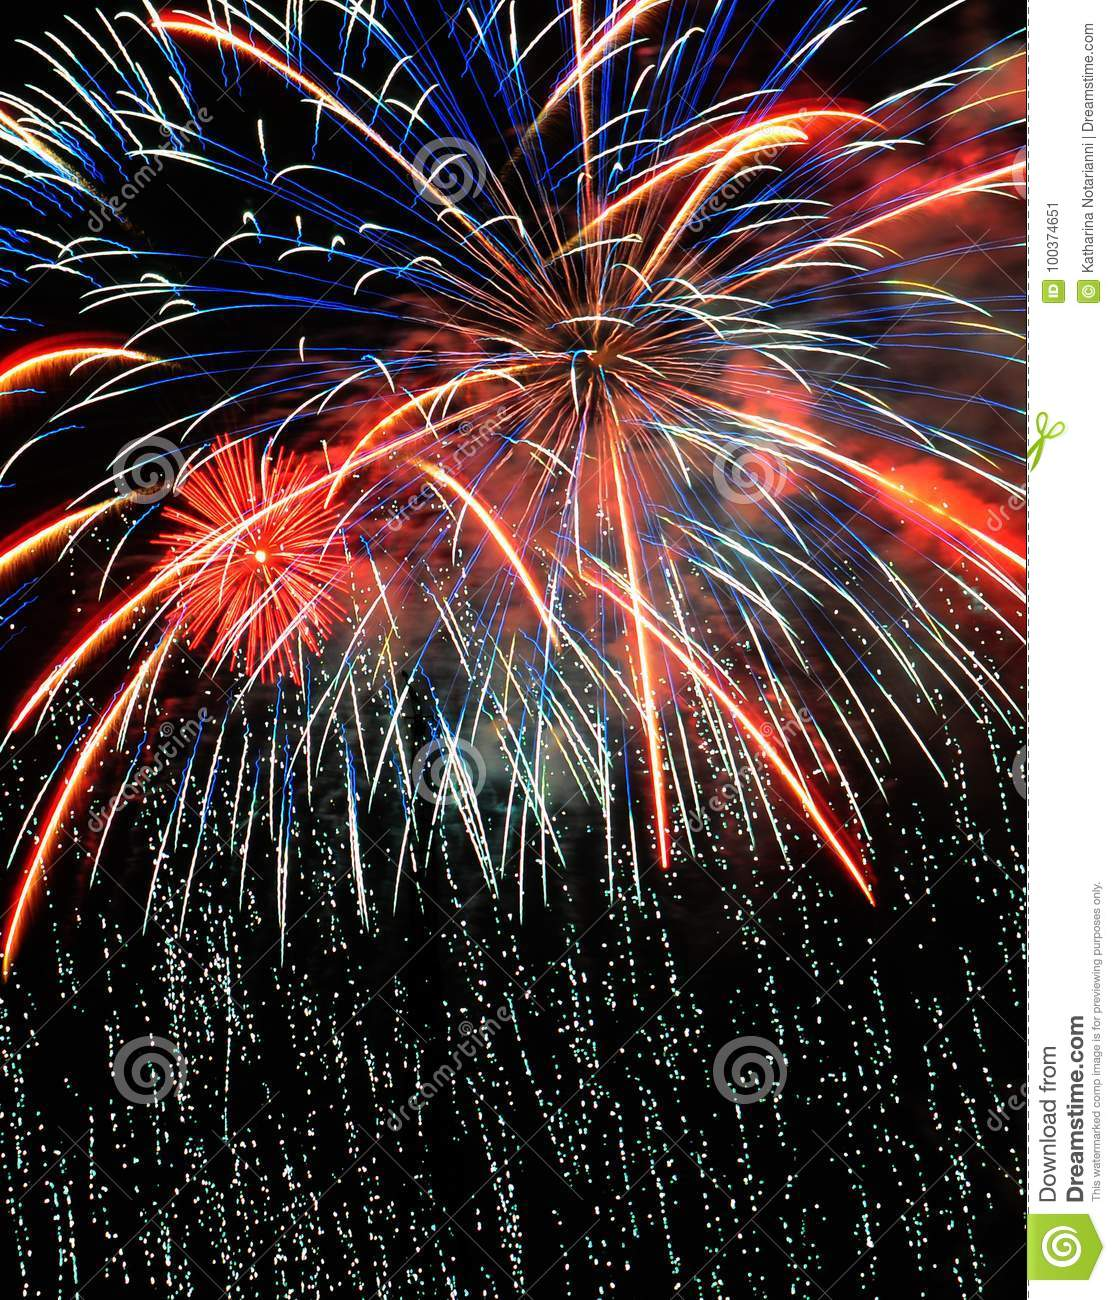 Colorful Fireworks in Night Sky